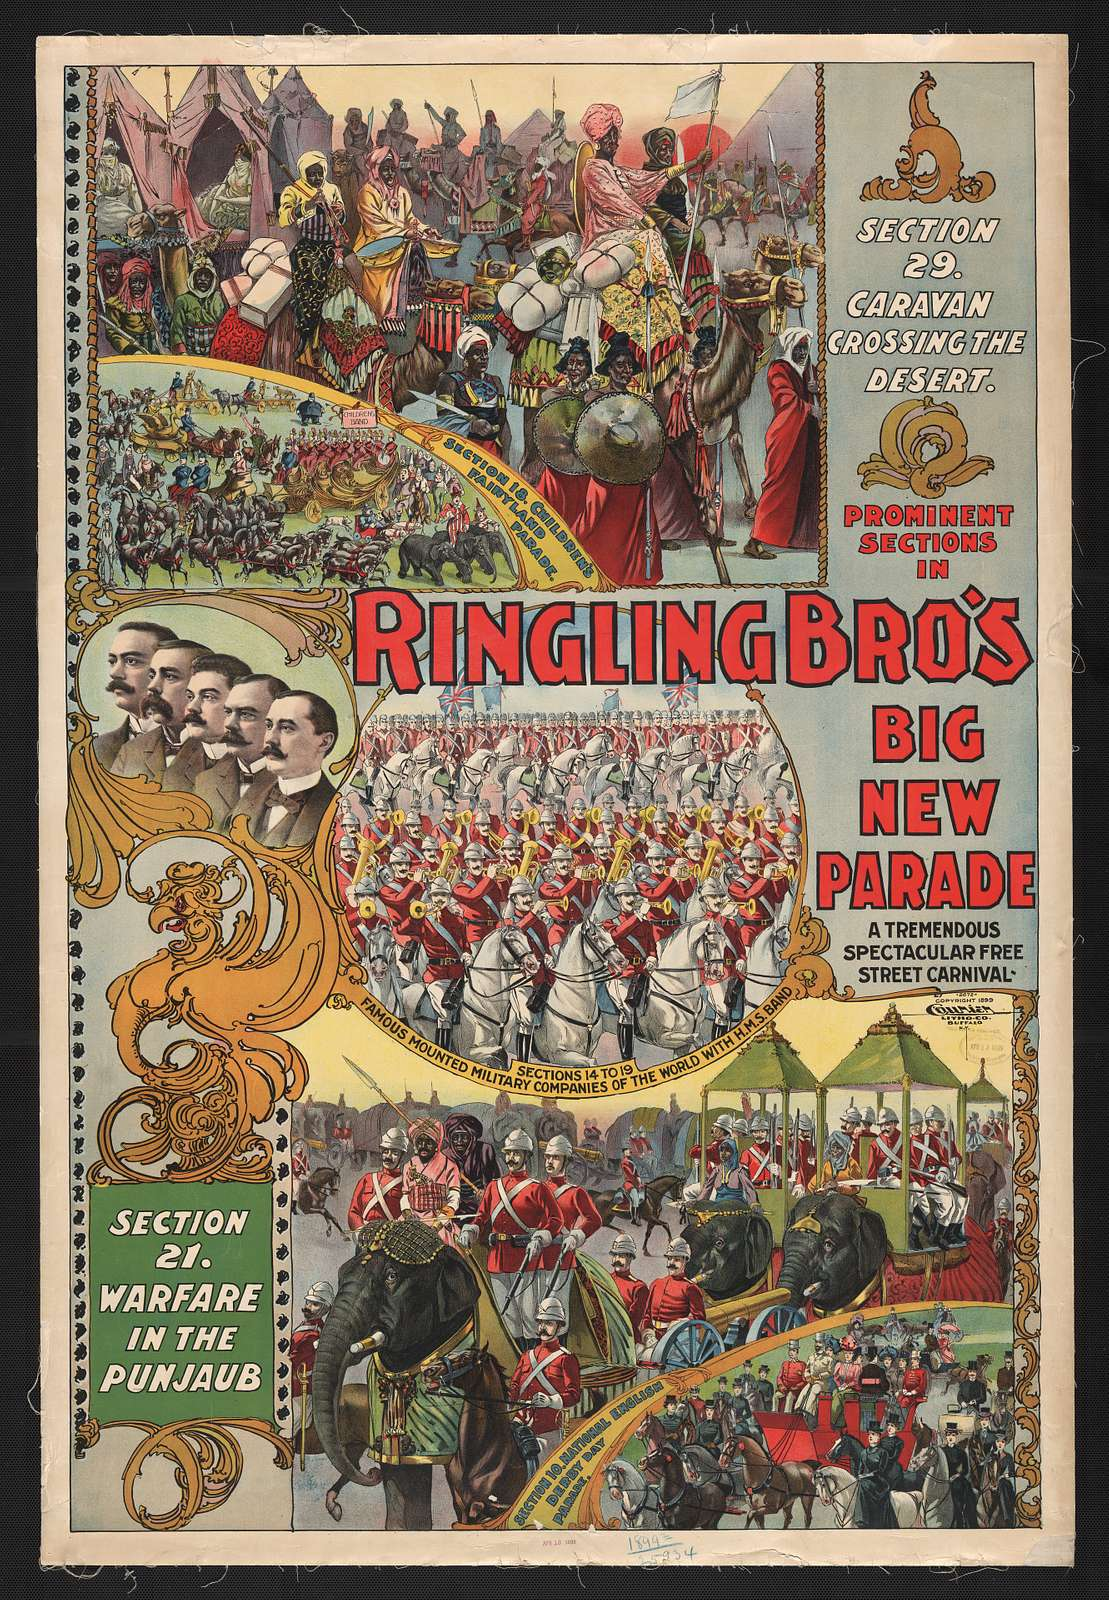 Prominent sections in Ringling Bro's. big new parade. A tremendous spectacular free street carnival